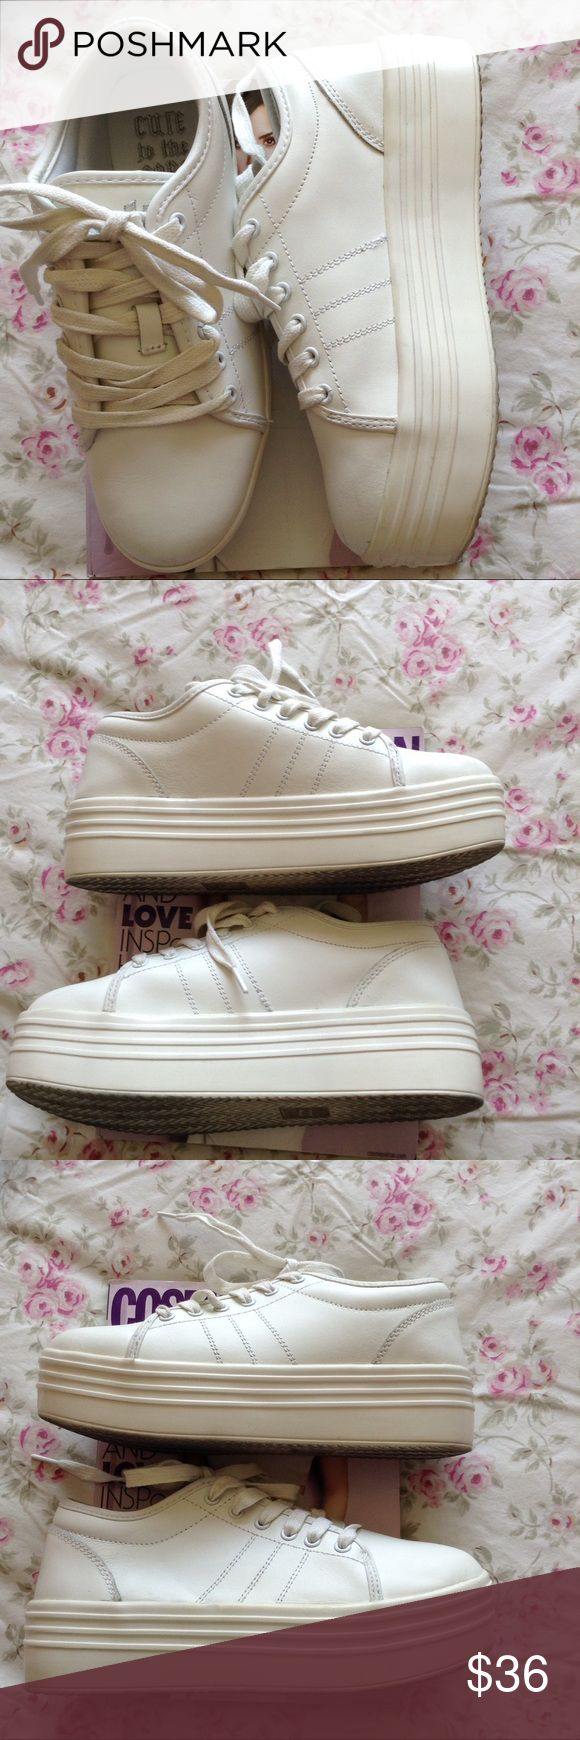 CUTE TO THE CORE WHITE PLATFORM SHOES 7 1/2 CUTE TO THE CORE GO BACK TO THE 90's IN THESE  WHITE PLATFORM TENNIS SHOES, WORN ONCE,  7 1/2 CUTE TO THE CORE Shoes Platforms